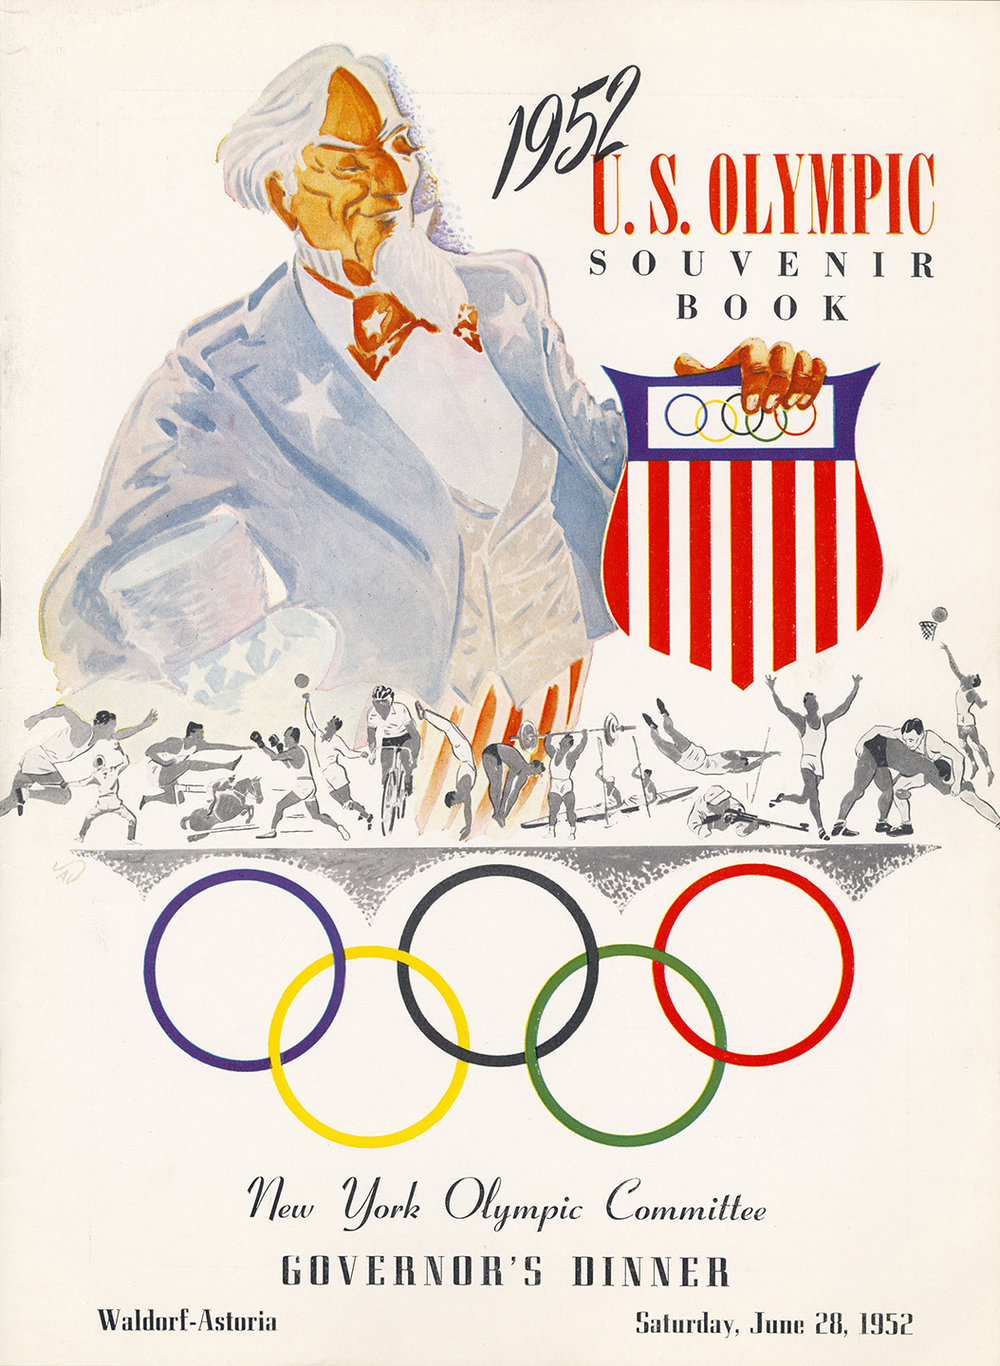 The 1952 festivities included a gala dinner for the athletes at the Waldorf Astoria on June 28.